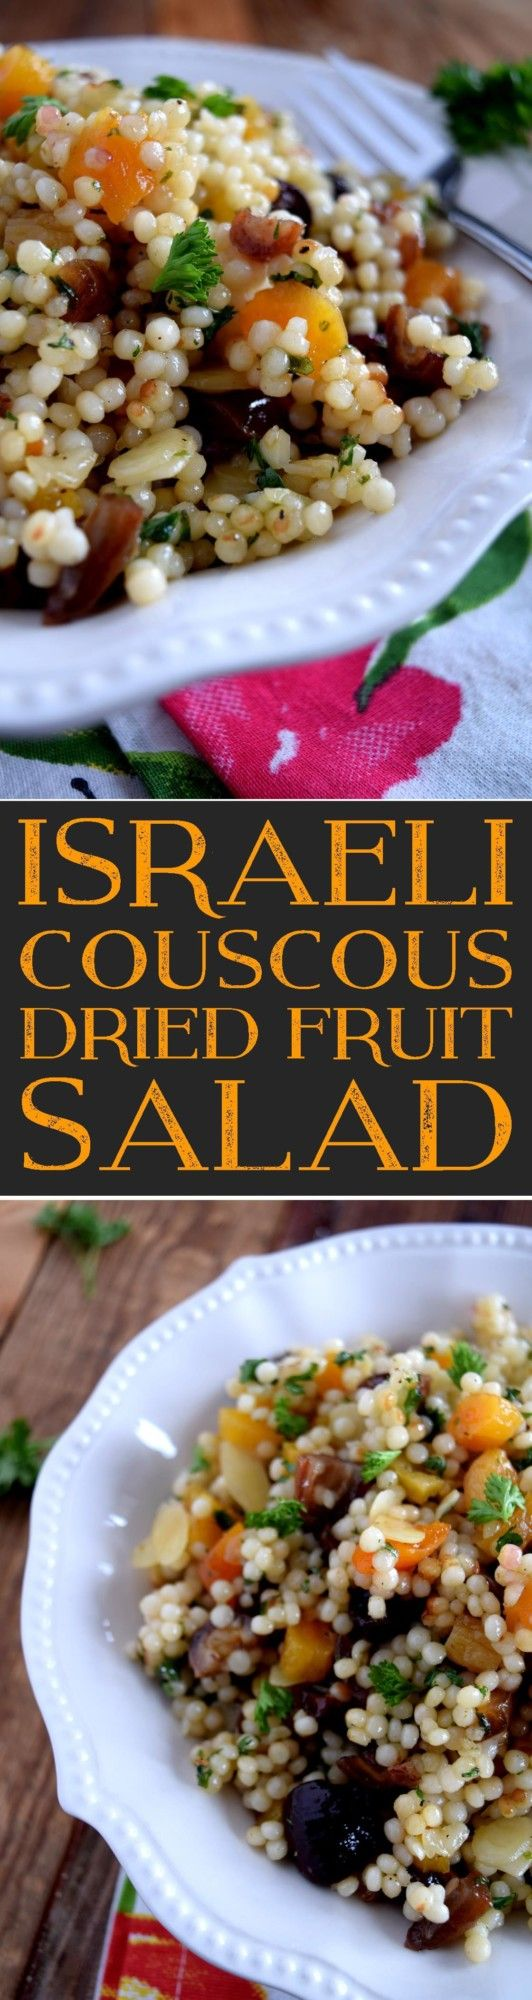 Israeli Couscous Dried Fruit Salad - Lord Byron's Kitchen